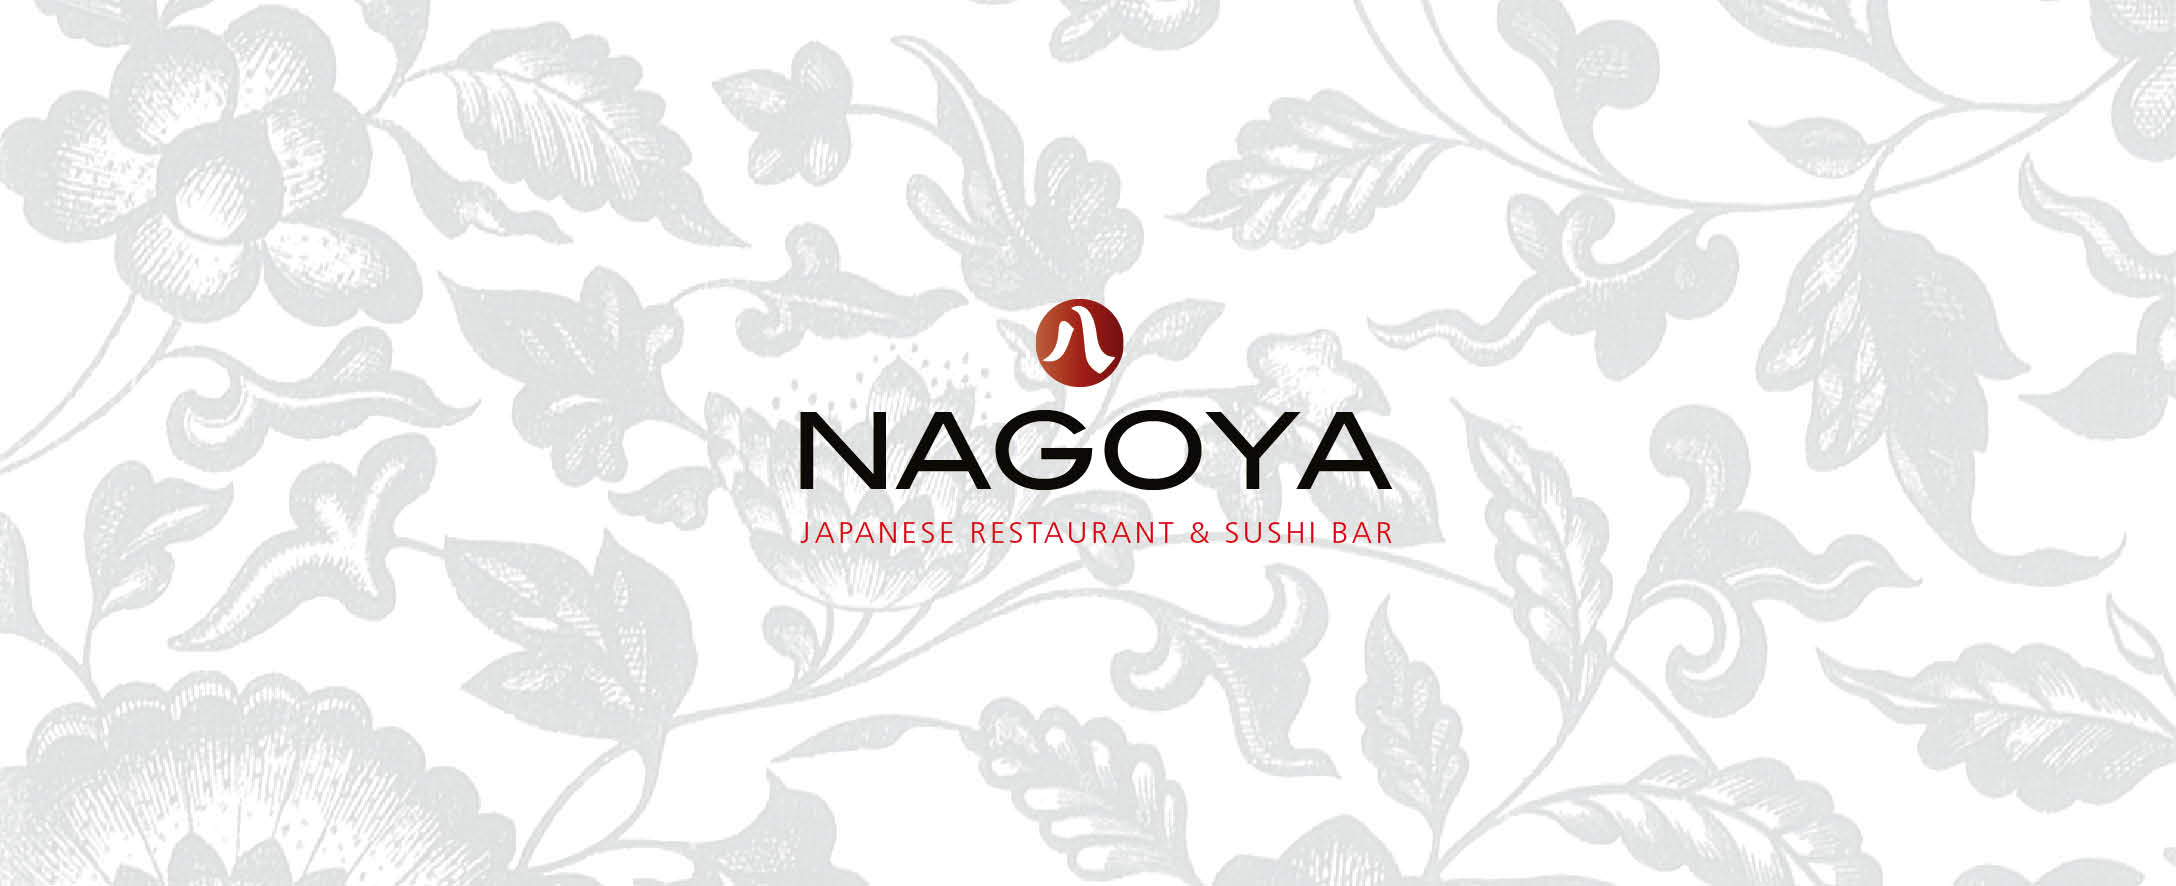 Nagoya Japanese Restaurant & Sushi Bar: UNFORGETTABLE TIME, UNFORGETTABLE TASTE!